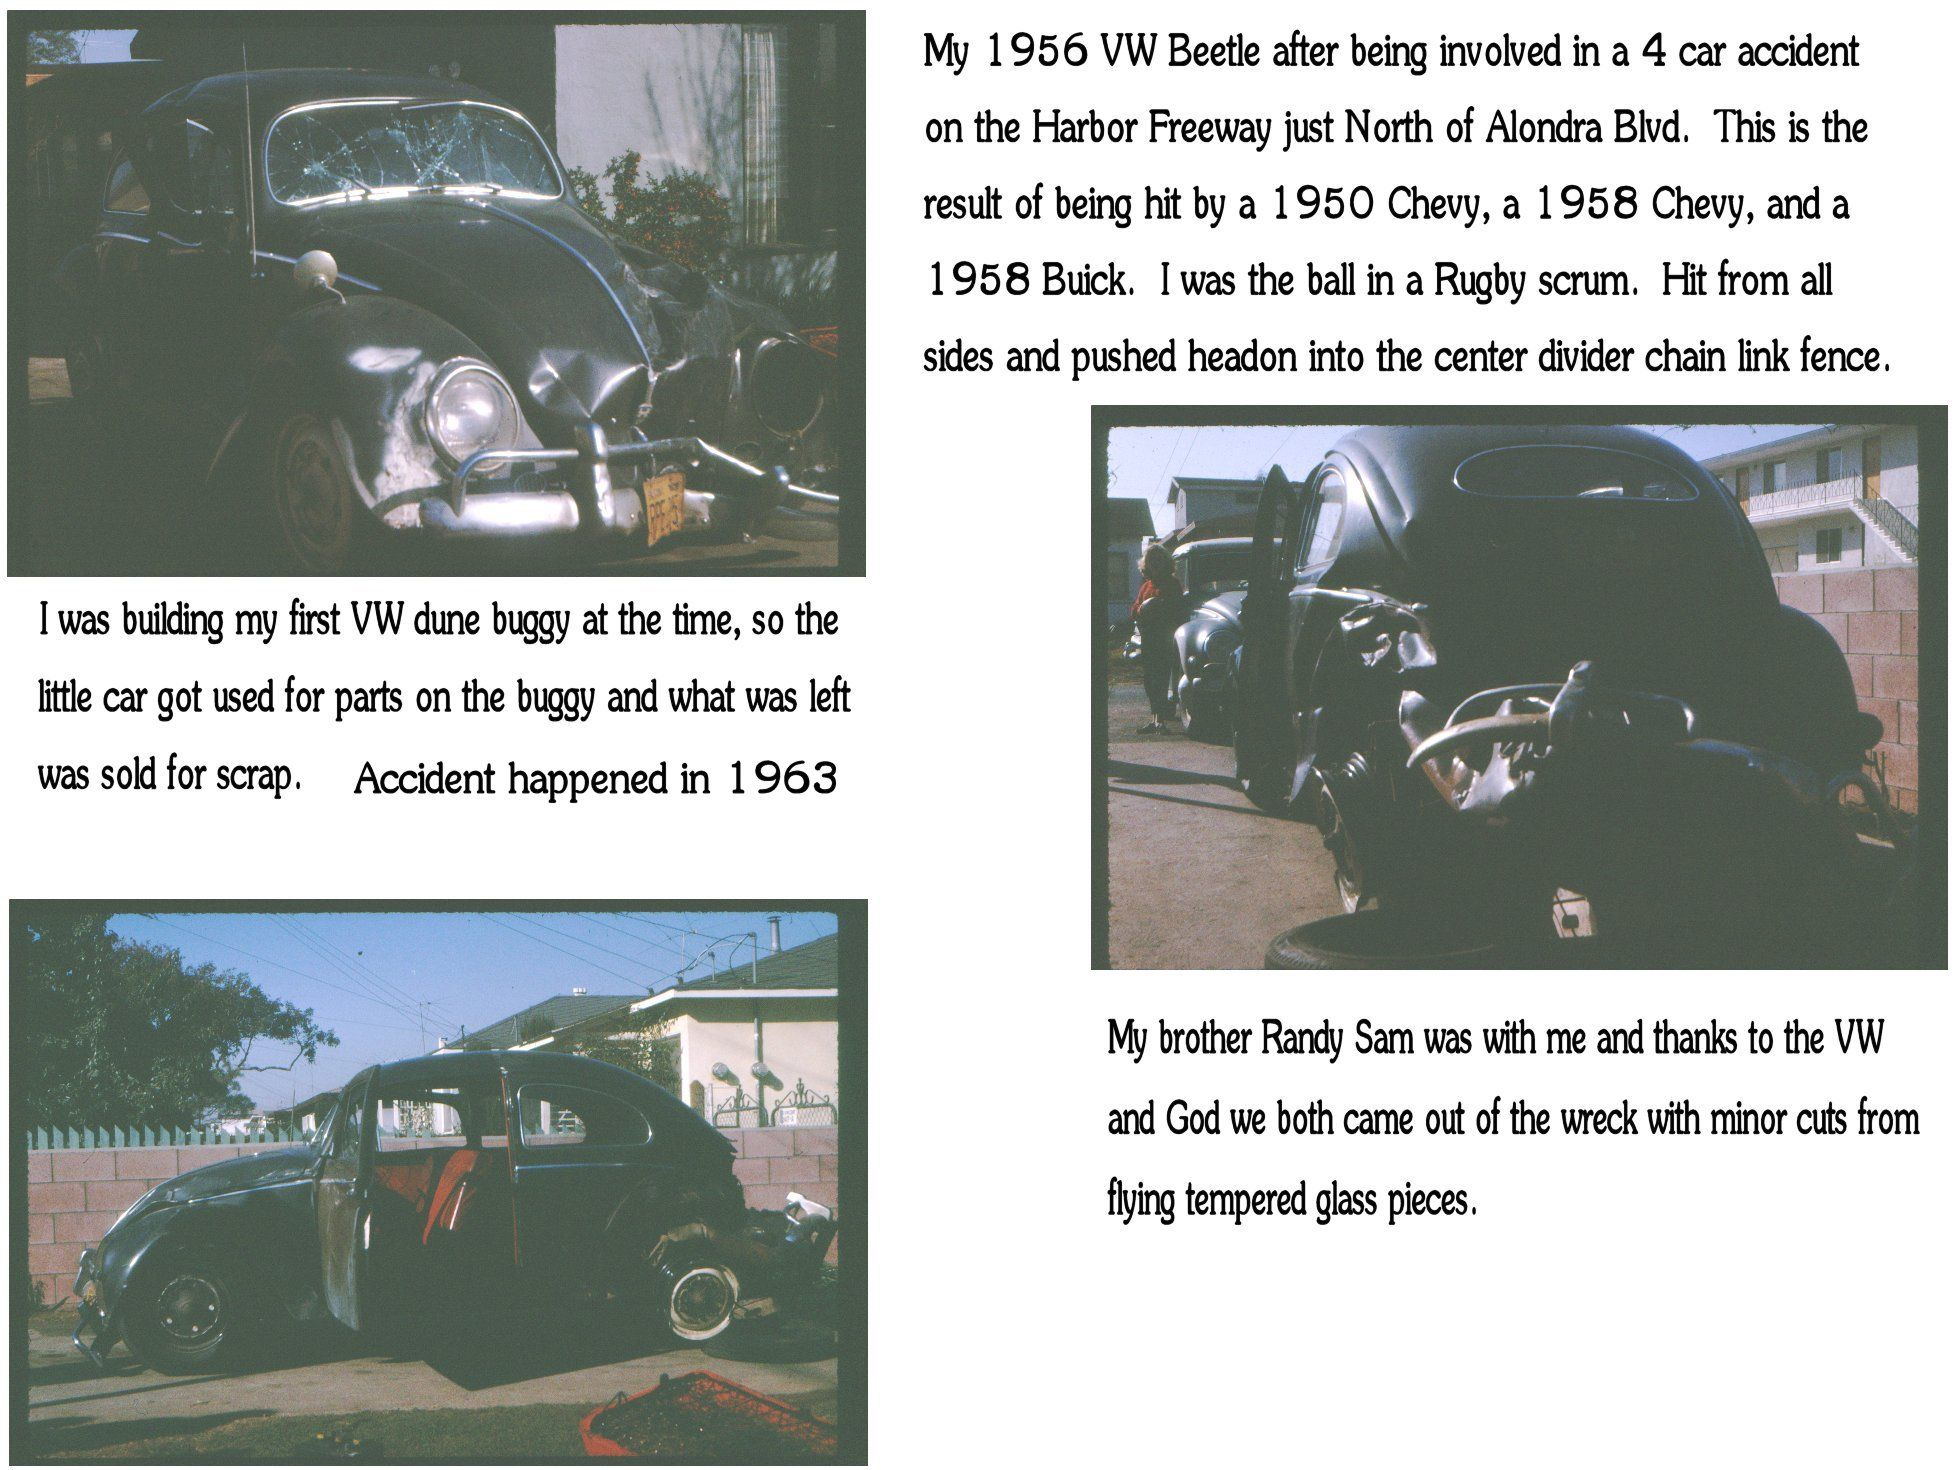 1963 Accident With My 1956 Vw Rugby Scrum Accident Vw Beetles